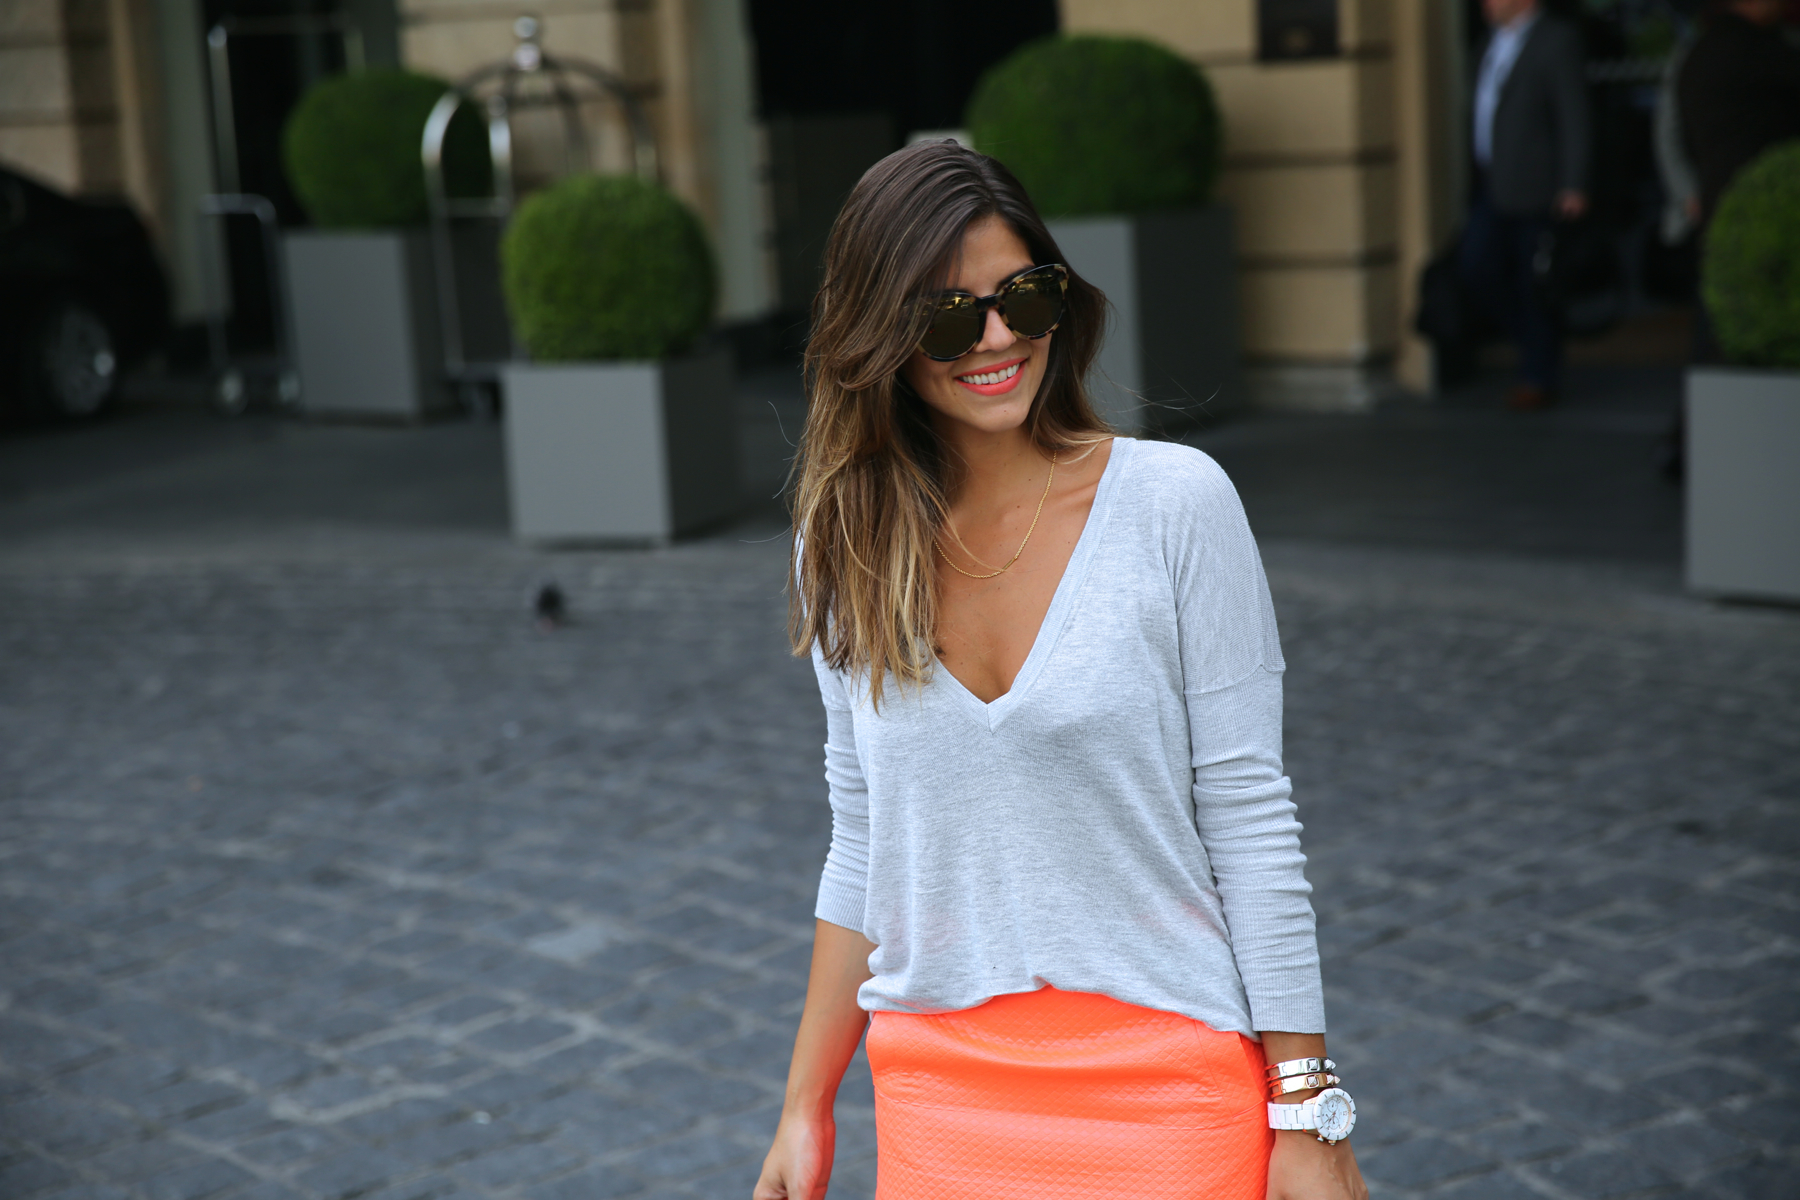 trendy_taste-look-outfit-street_style-ootd-blog-blogger-fashion_spain-moda_españa-primavera-orange-fluo-naranja_fluor_falda-sandalias_plata-silver_sandals-asos-basic_sweater-nine_west-1